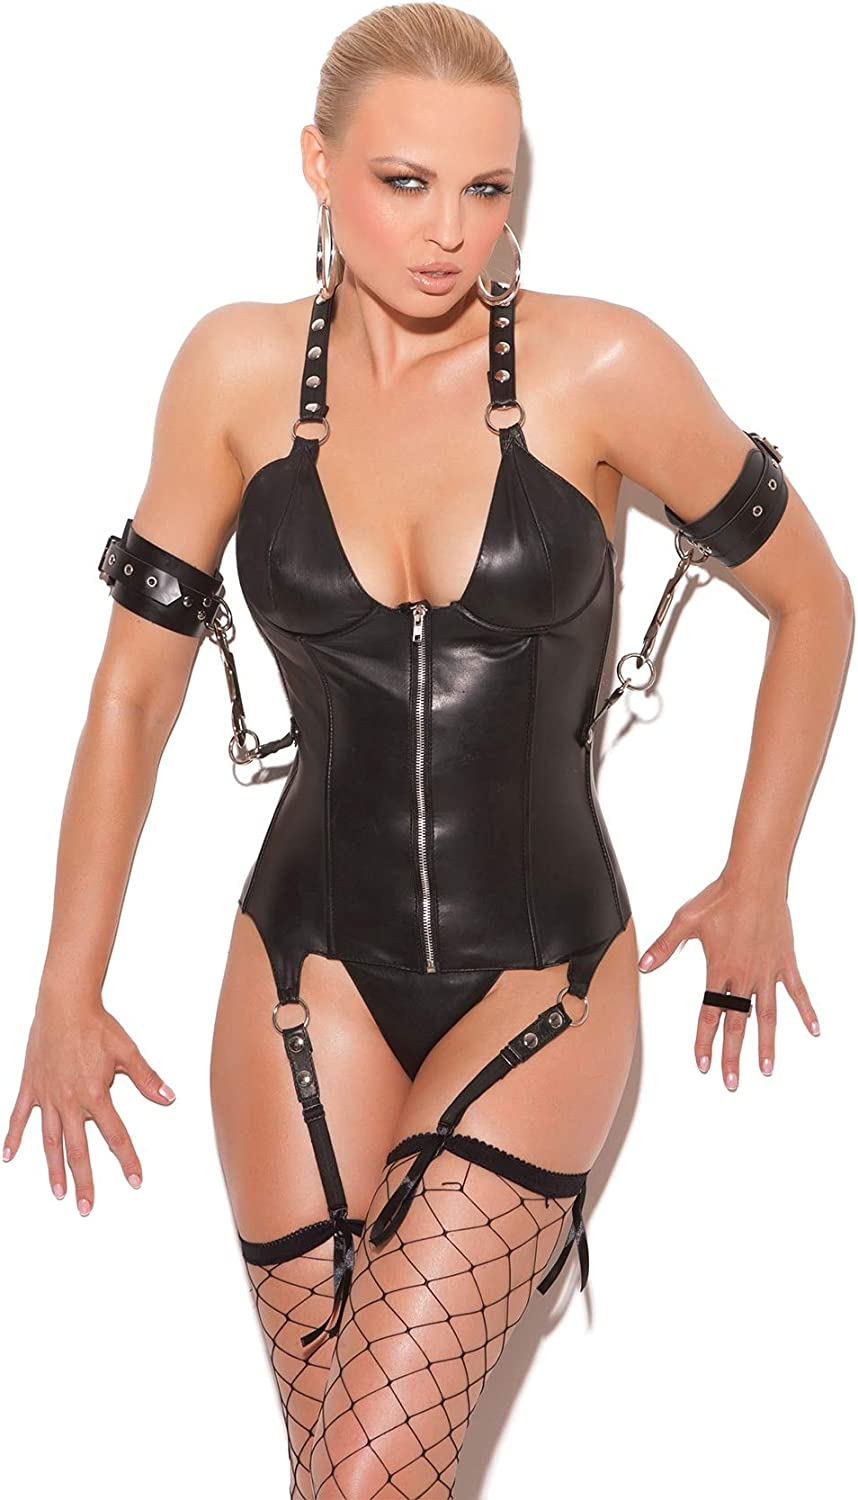 Boning and Side Snaps for Restraints EML3134 Leather Back with lace up Detail Leather Zip Front Corset with Underwire Cups